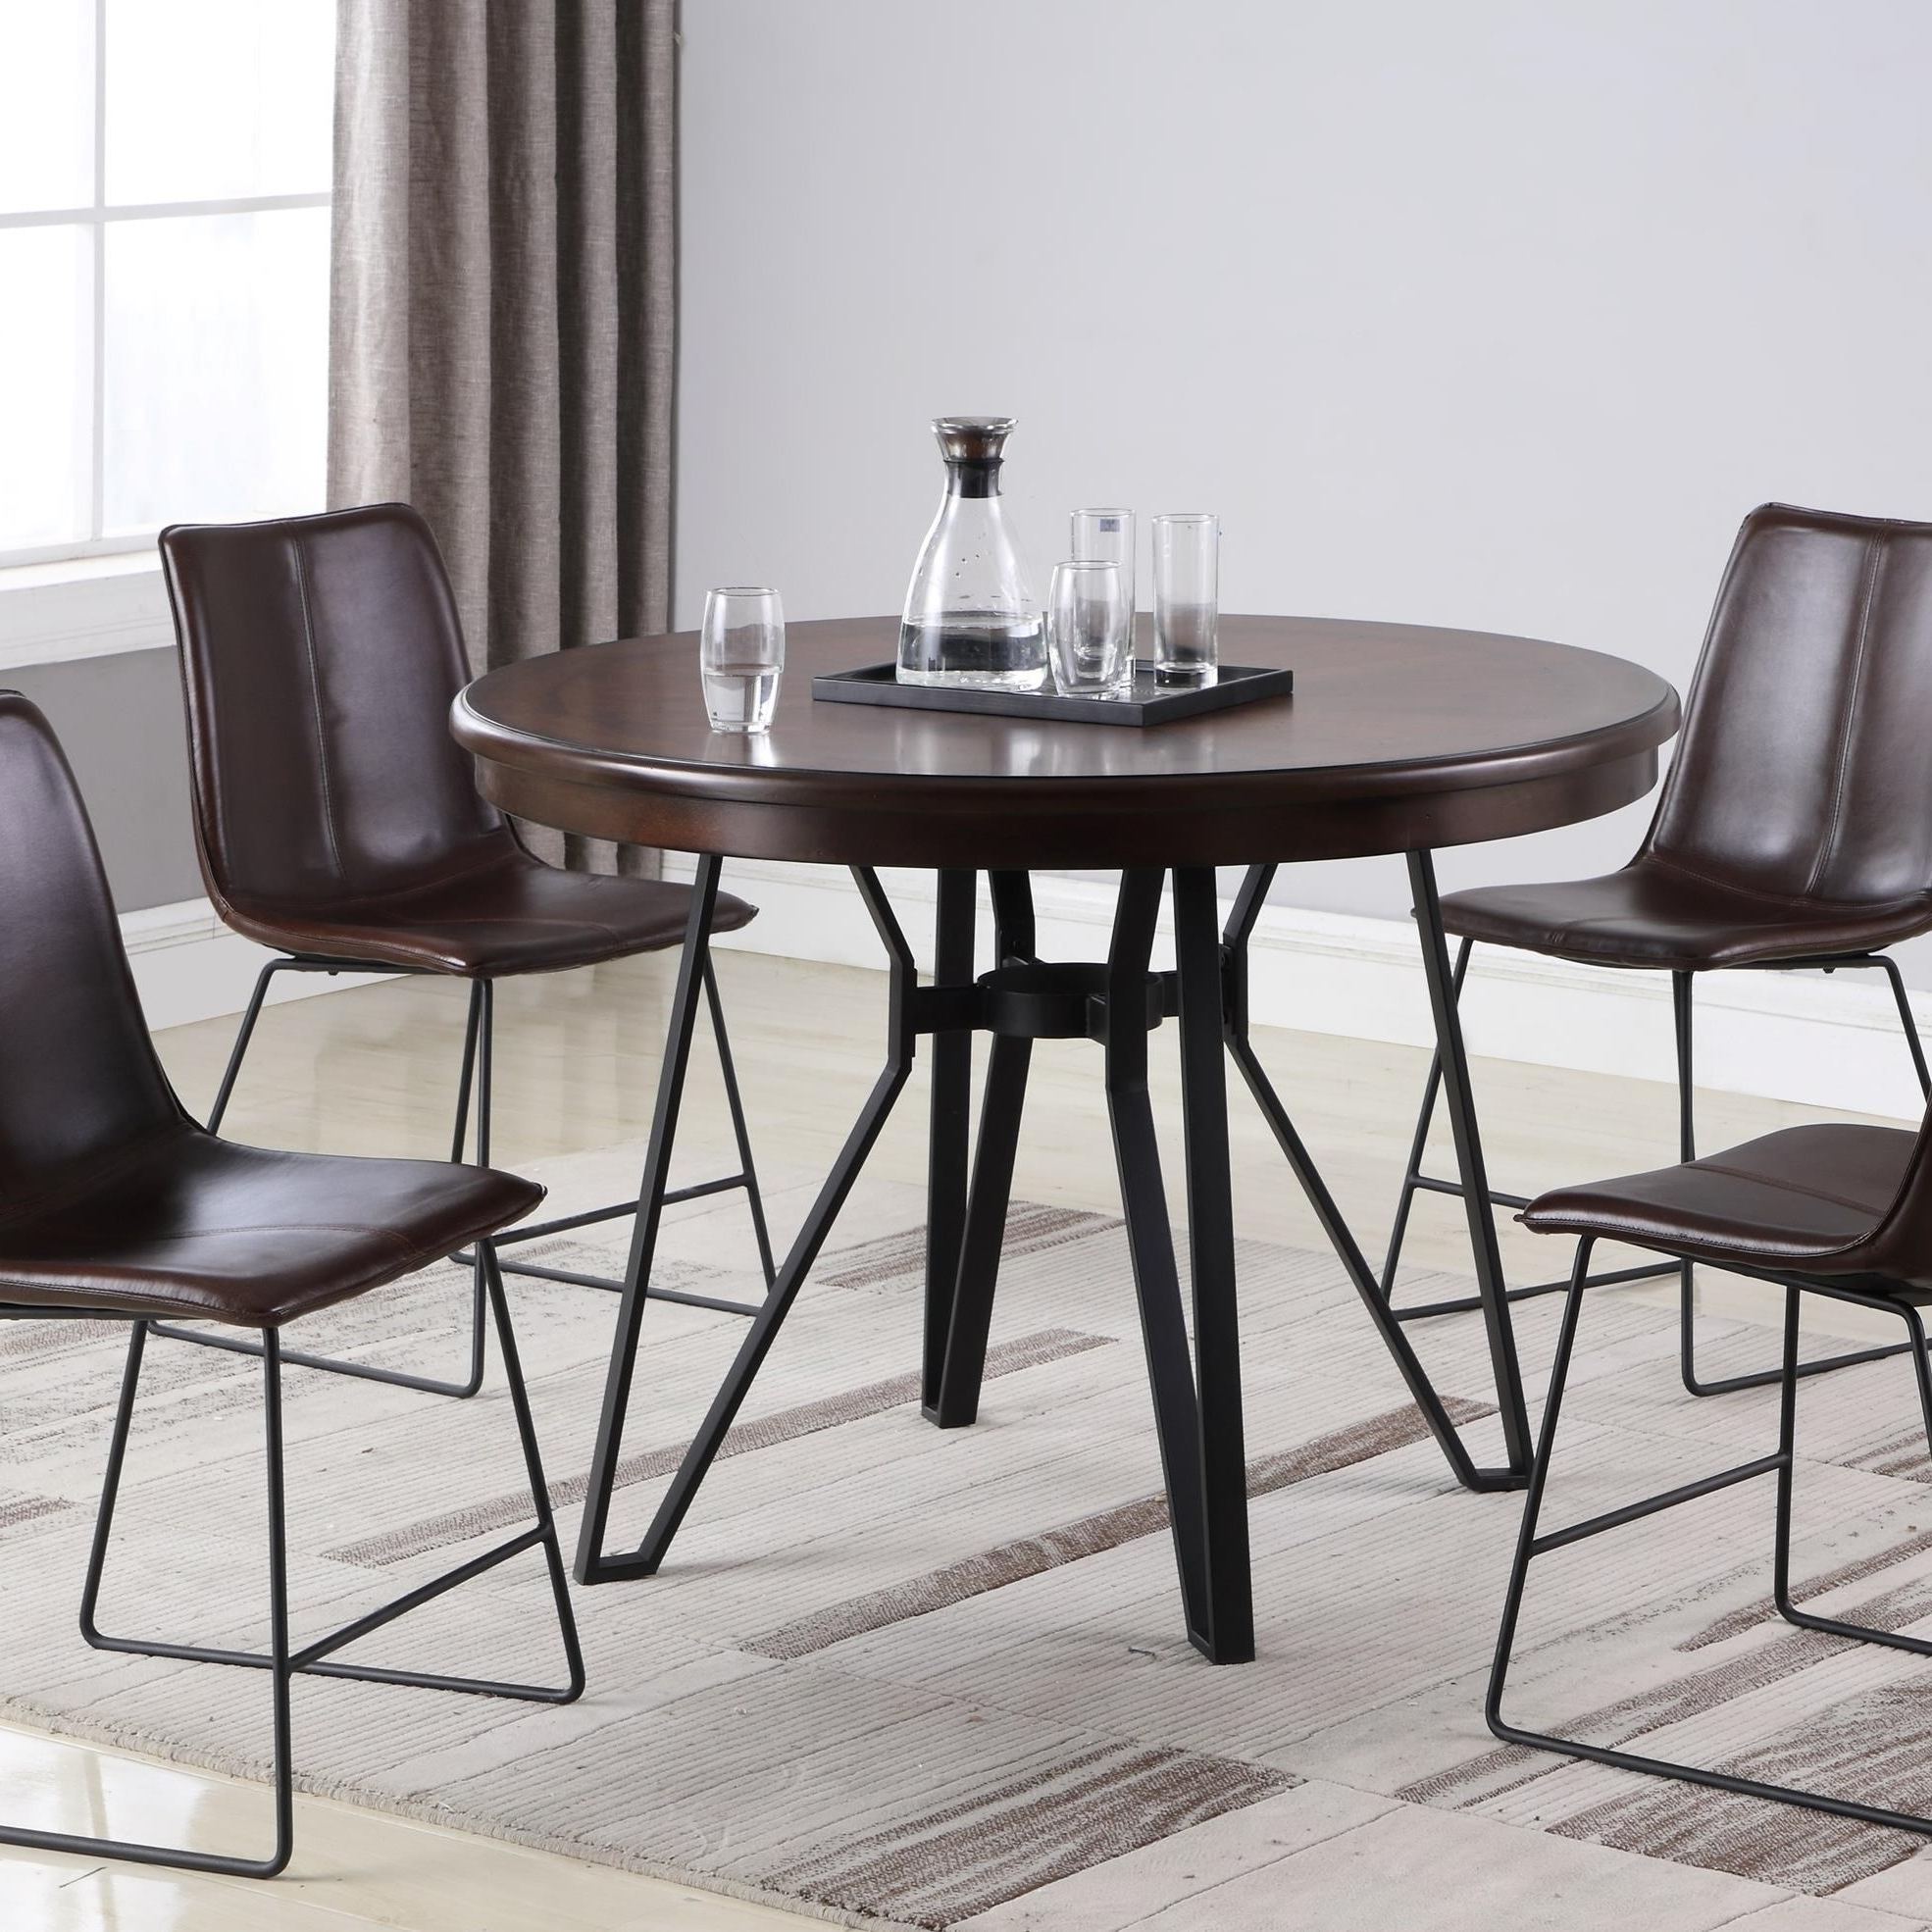 Famous Round Industrial Style Dining Table Residence C1860P With Regard To Small Rustic Look Dining Tables (View 4 of 25)